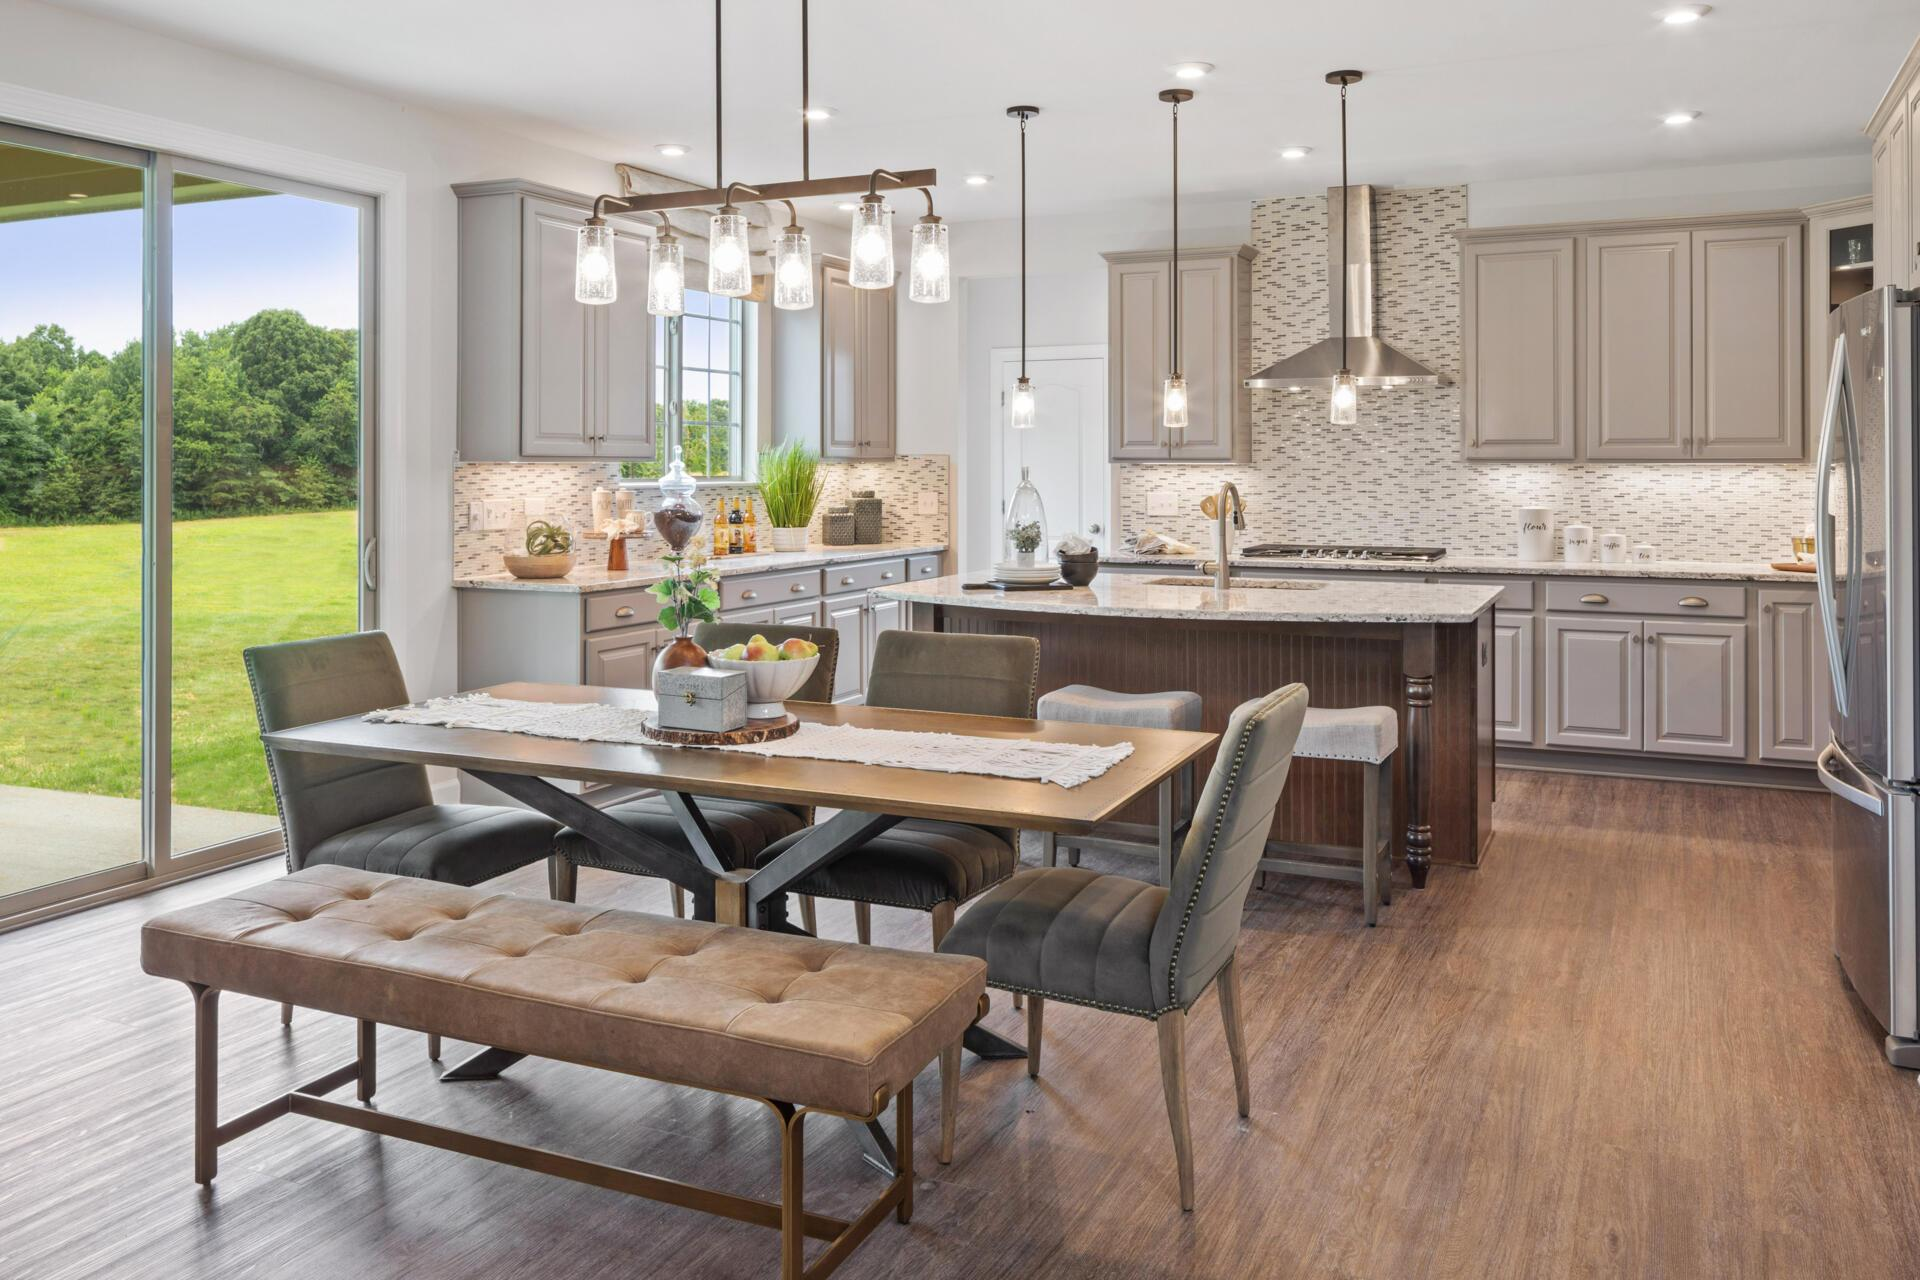 Kitchen featured in the Buchanan By Drees Homes in Cleveland, OH